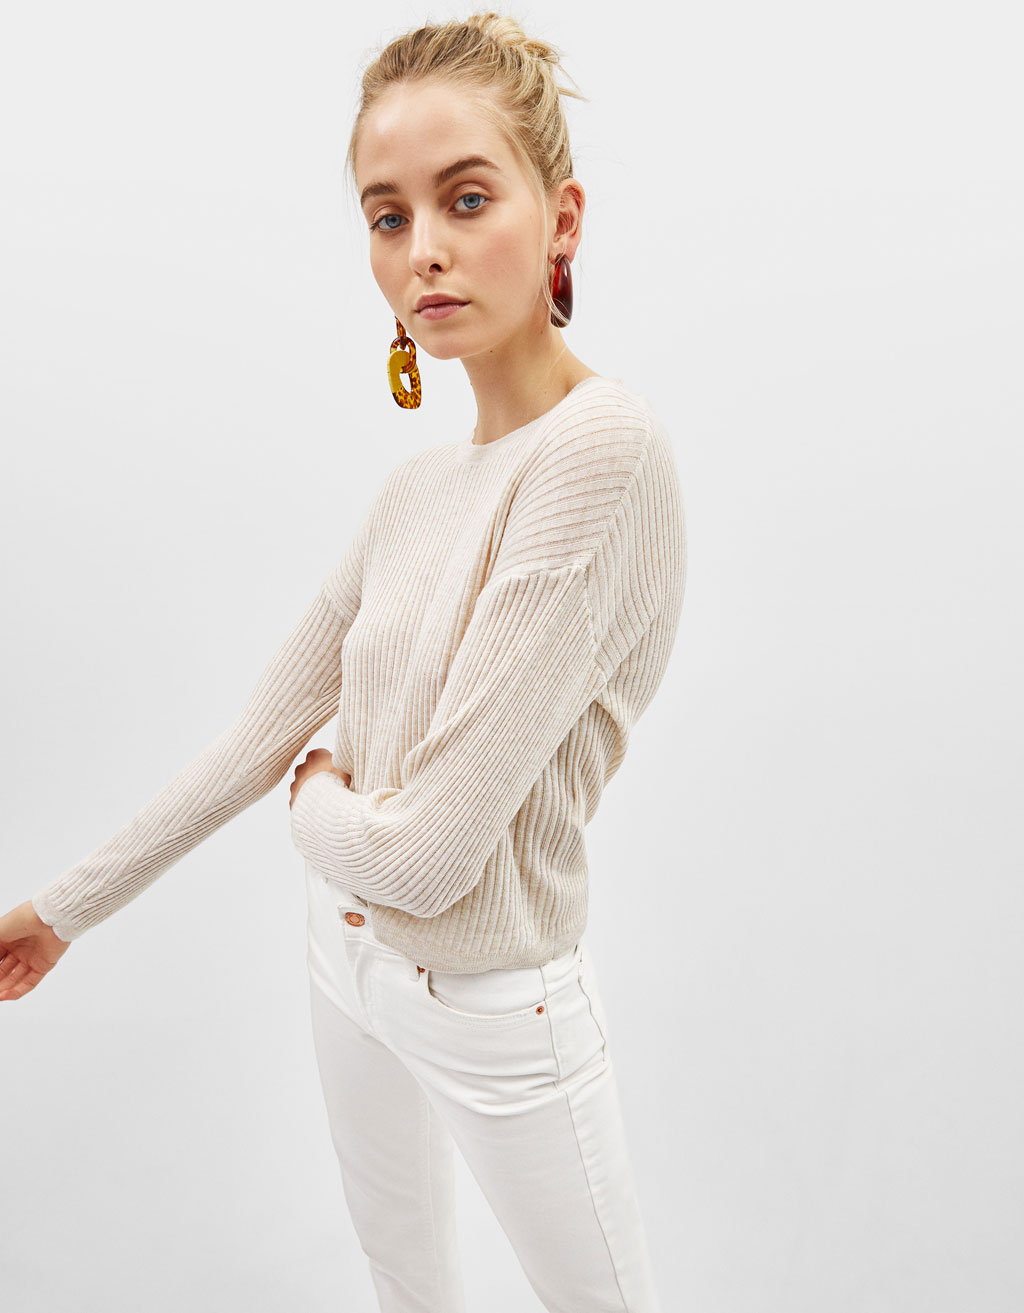 a63673b496 High neck sweater. 12.99. Ribbed knitted sweater